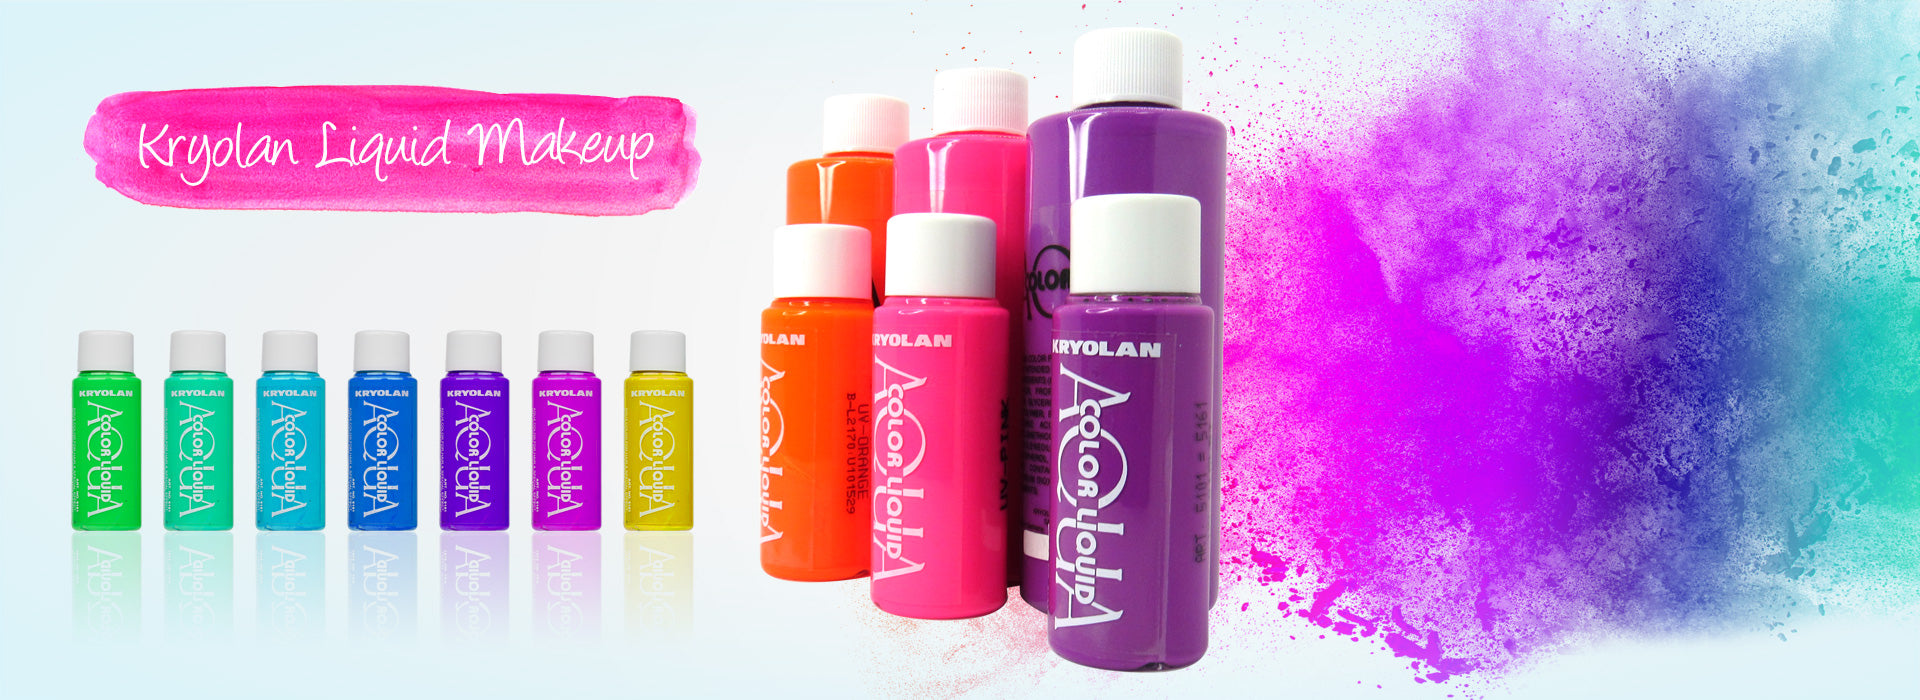 Kryolan Liquid Makeup